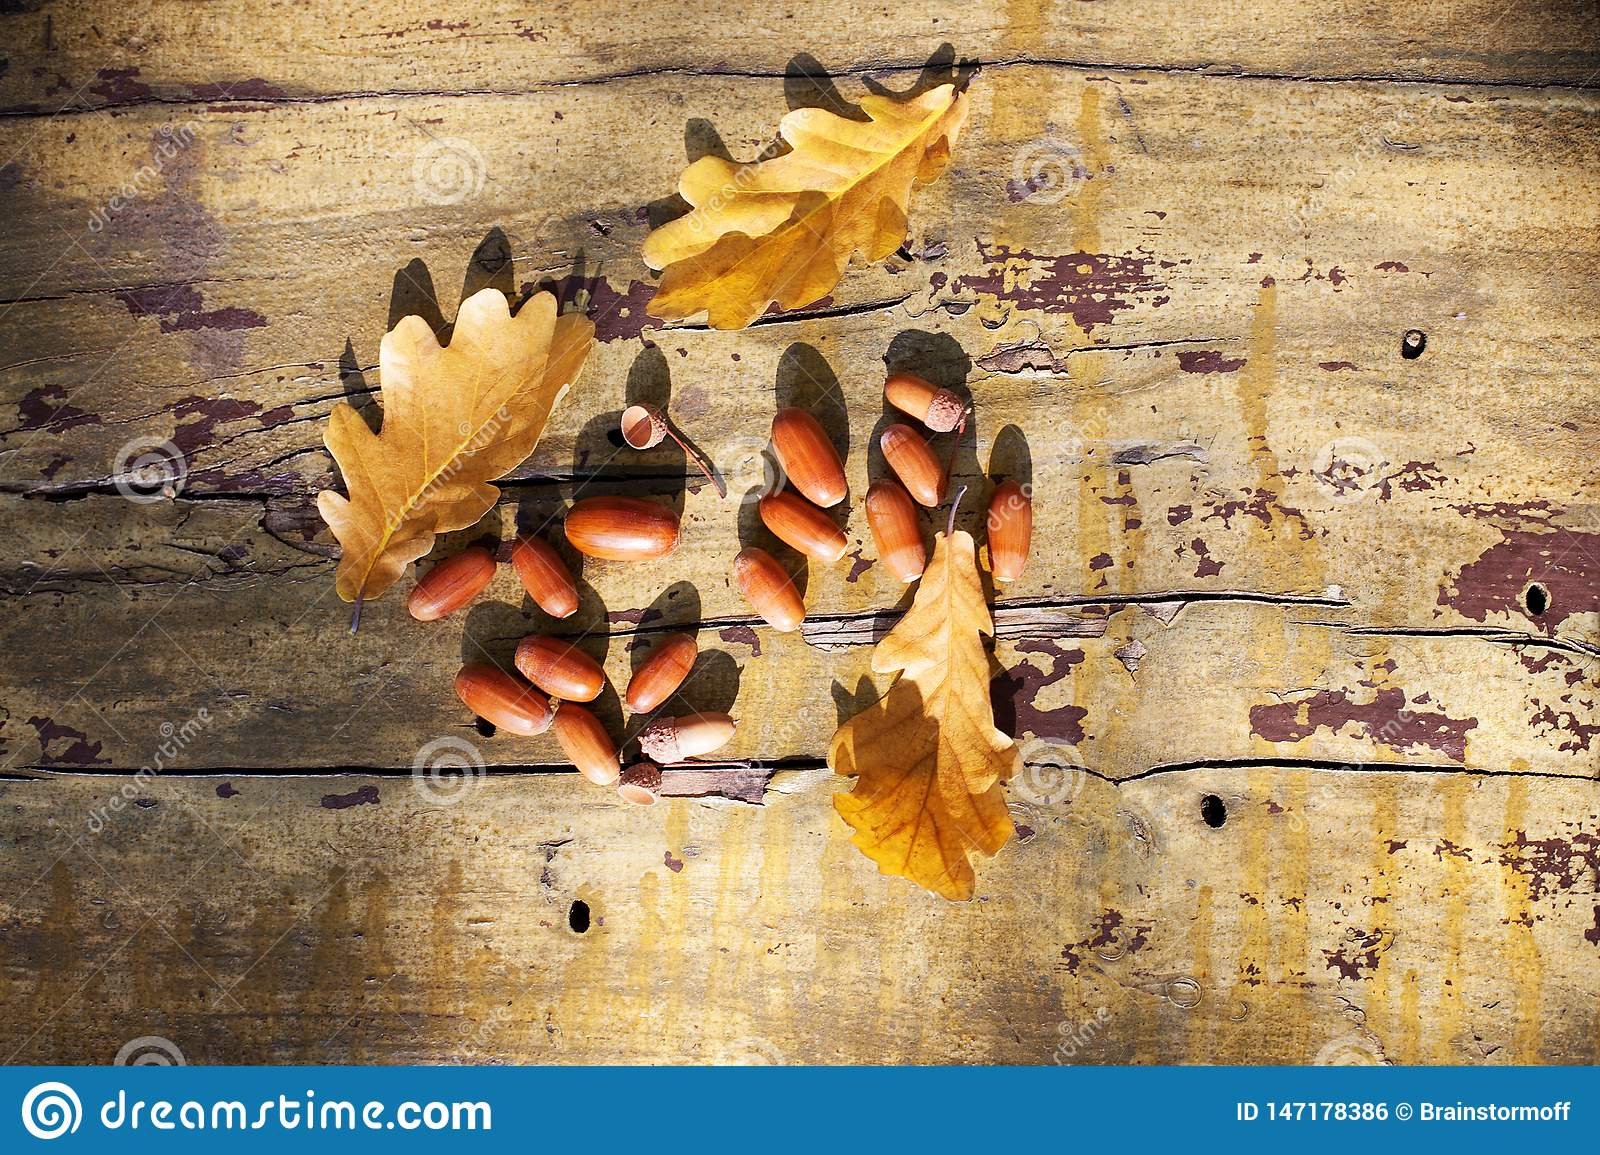 Three fallen yellow oak tree leaves and red acorns on old wooden board background close up, golden autumn foliage on bench in park